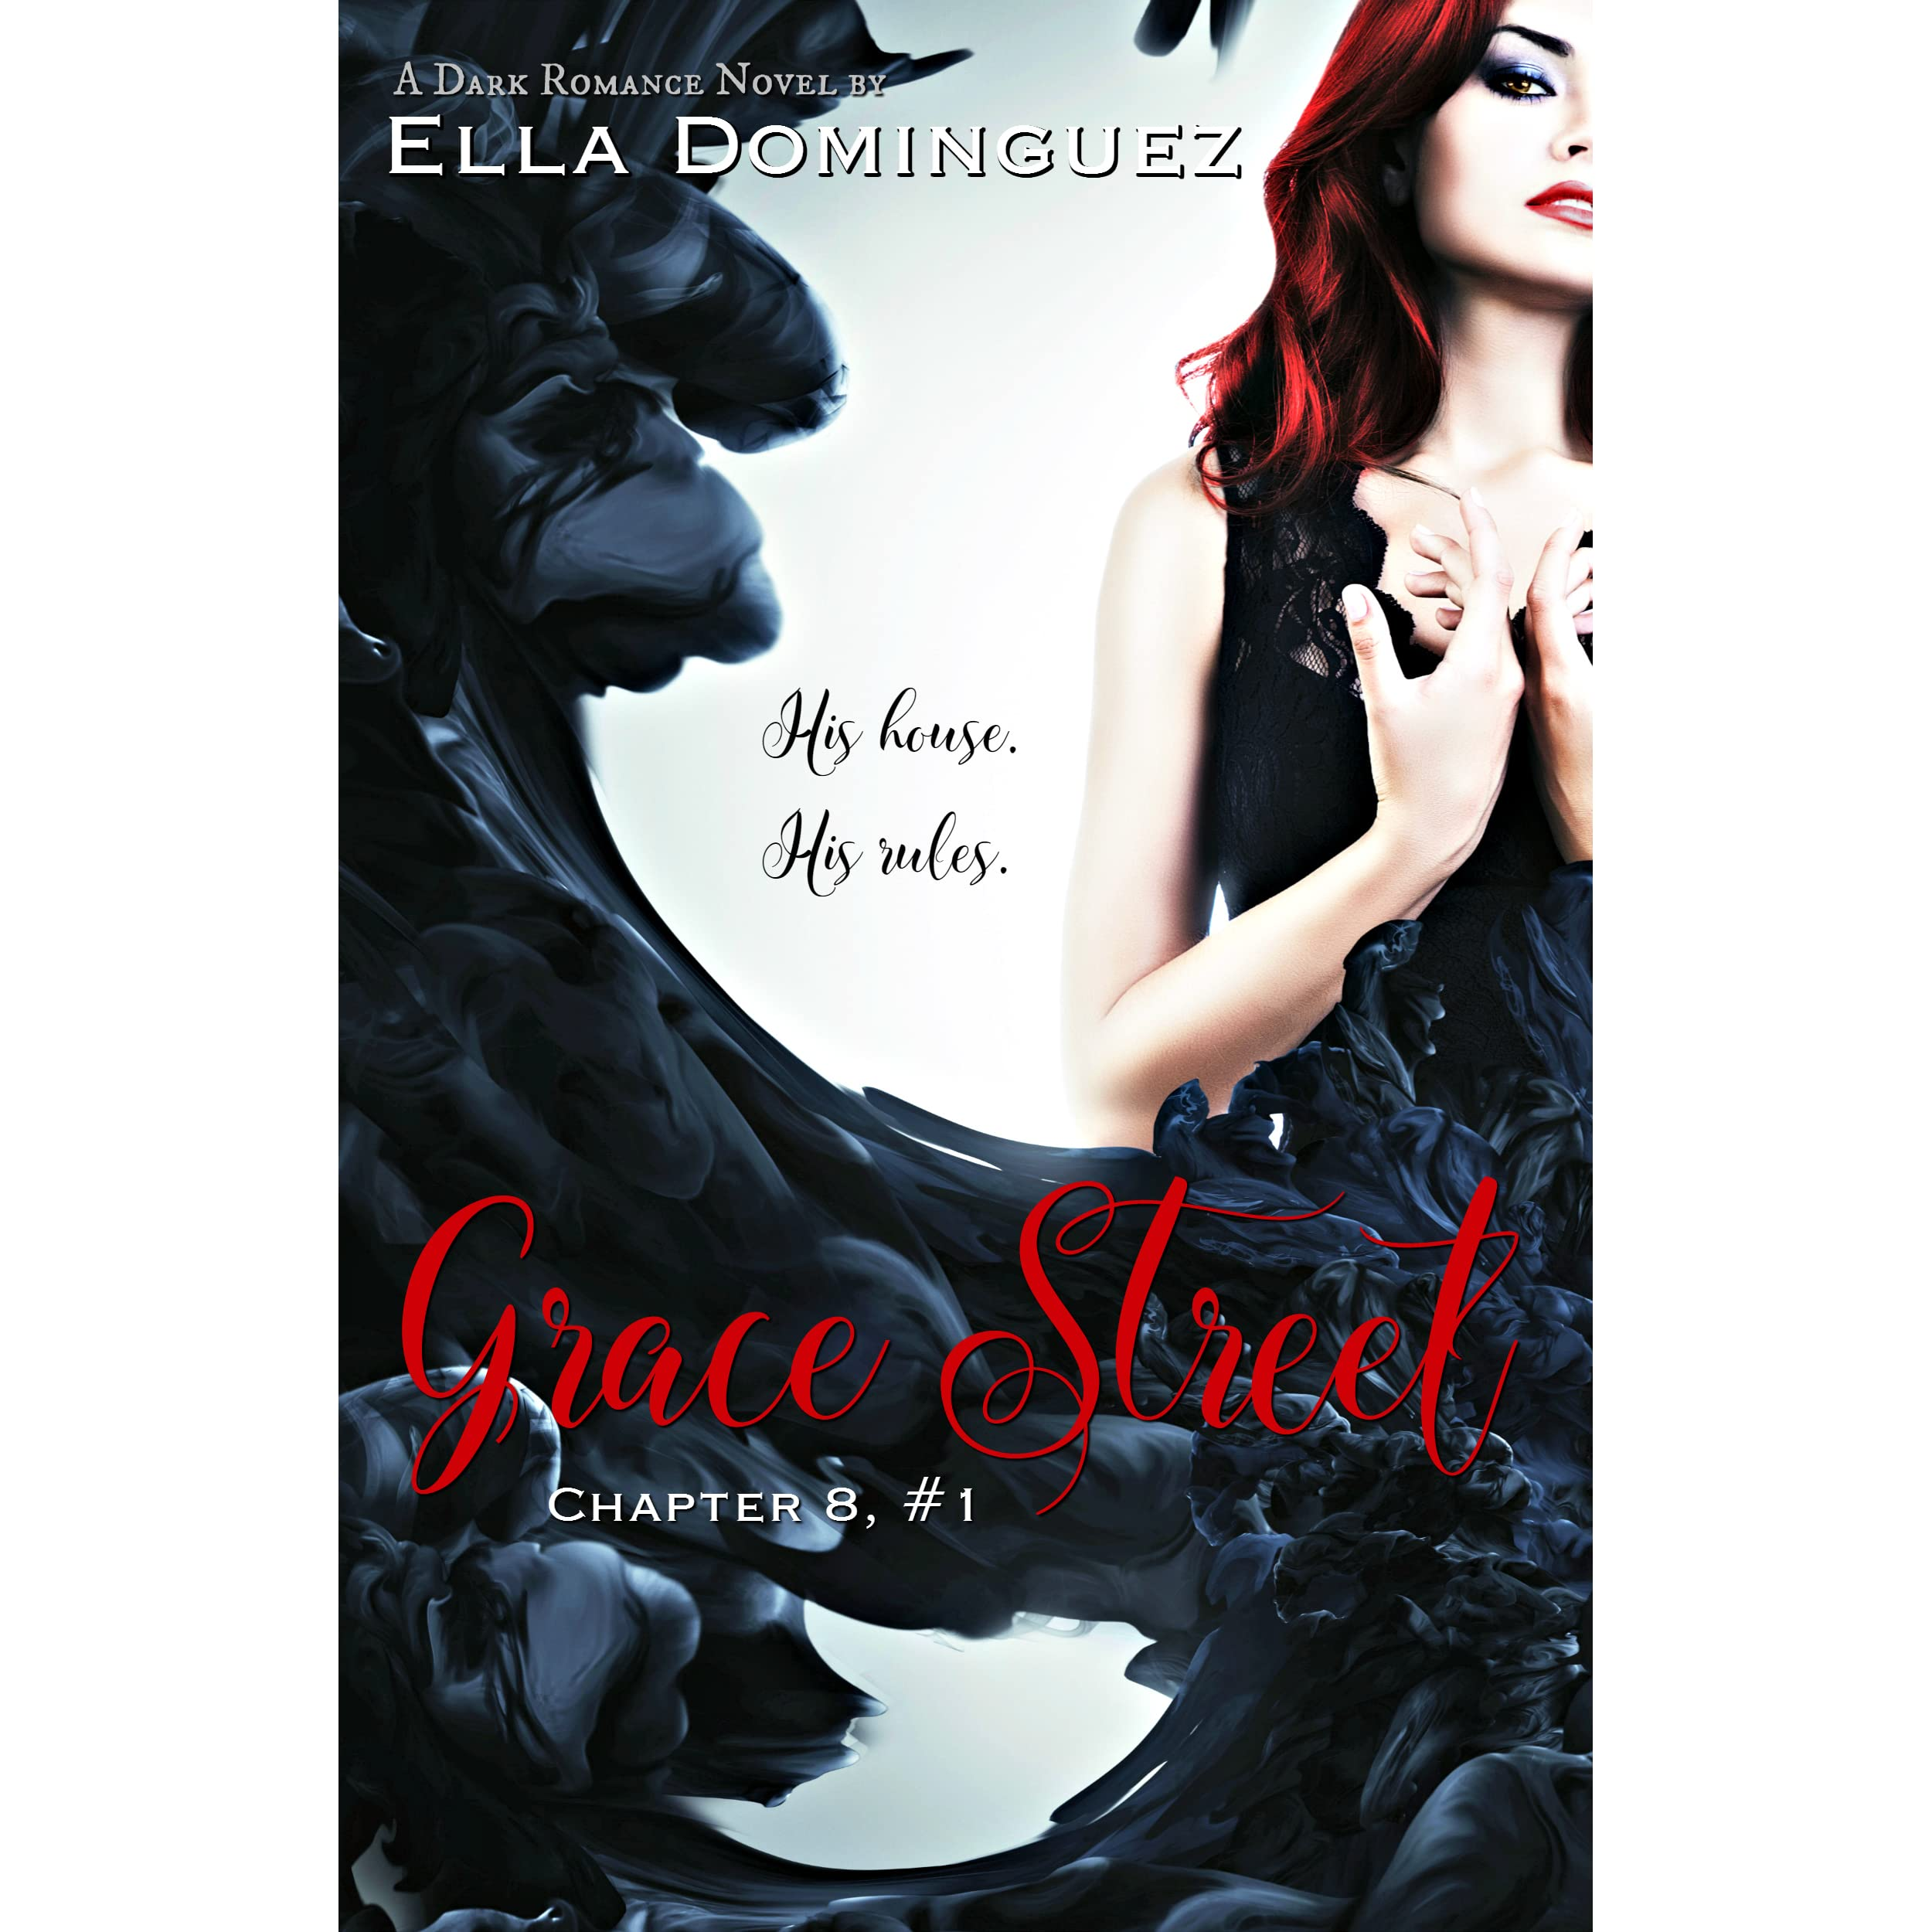 grace street chapter by ella dominguez reviews grace street chapter 8 1 by ella dominguez reviews discussion bookclubs lists